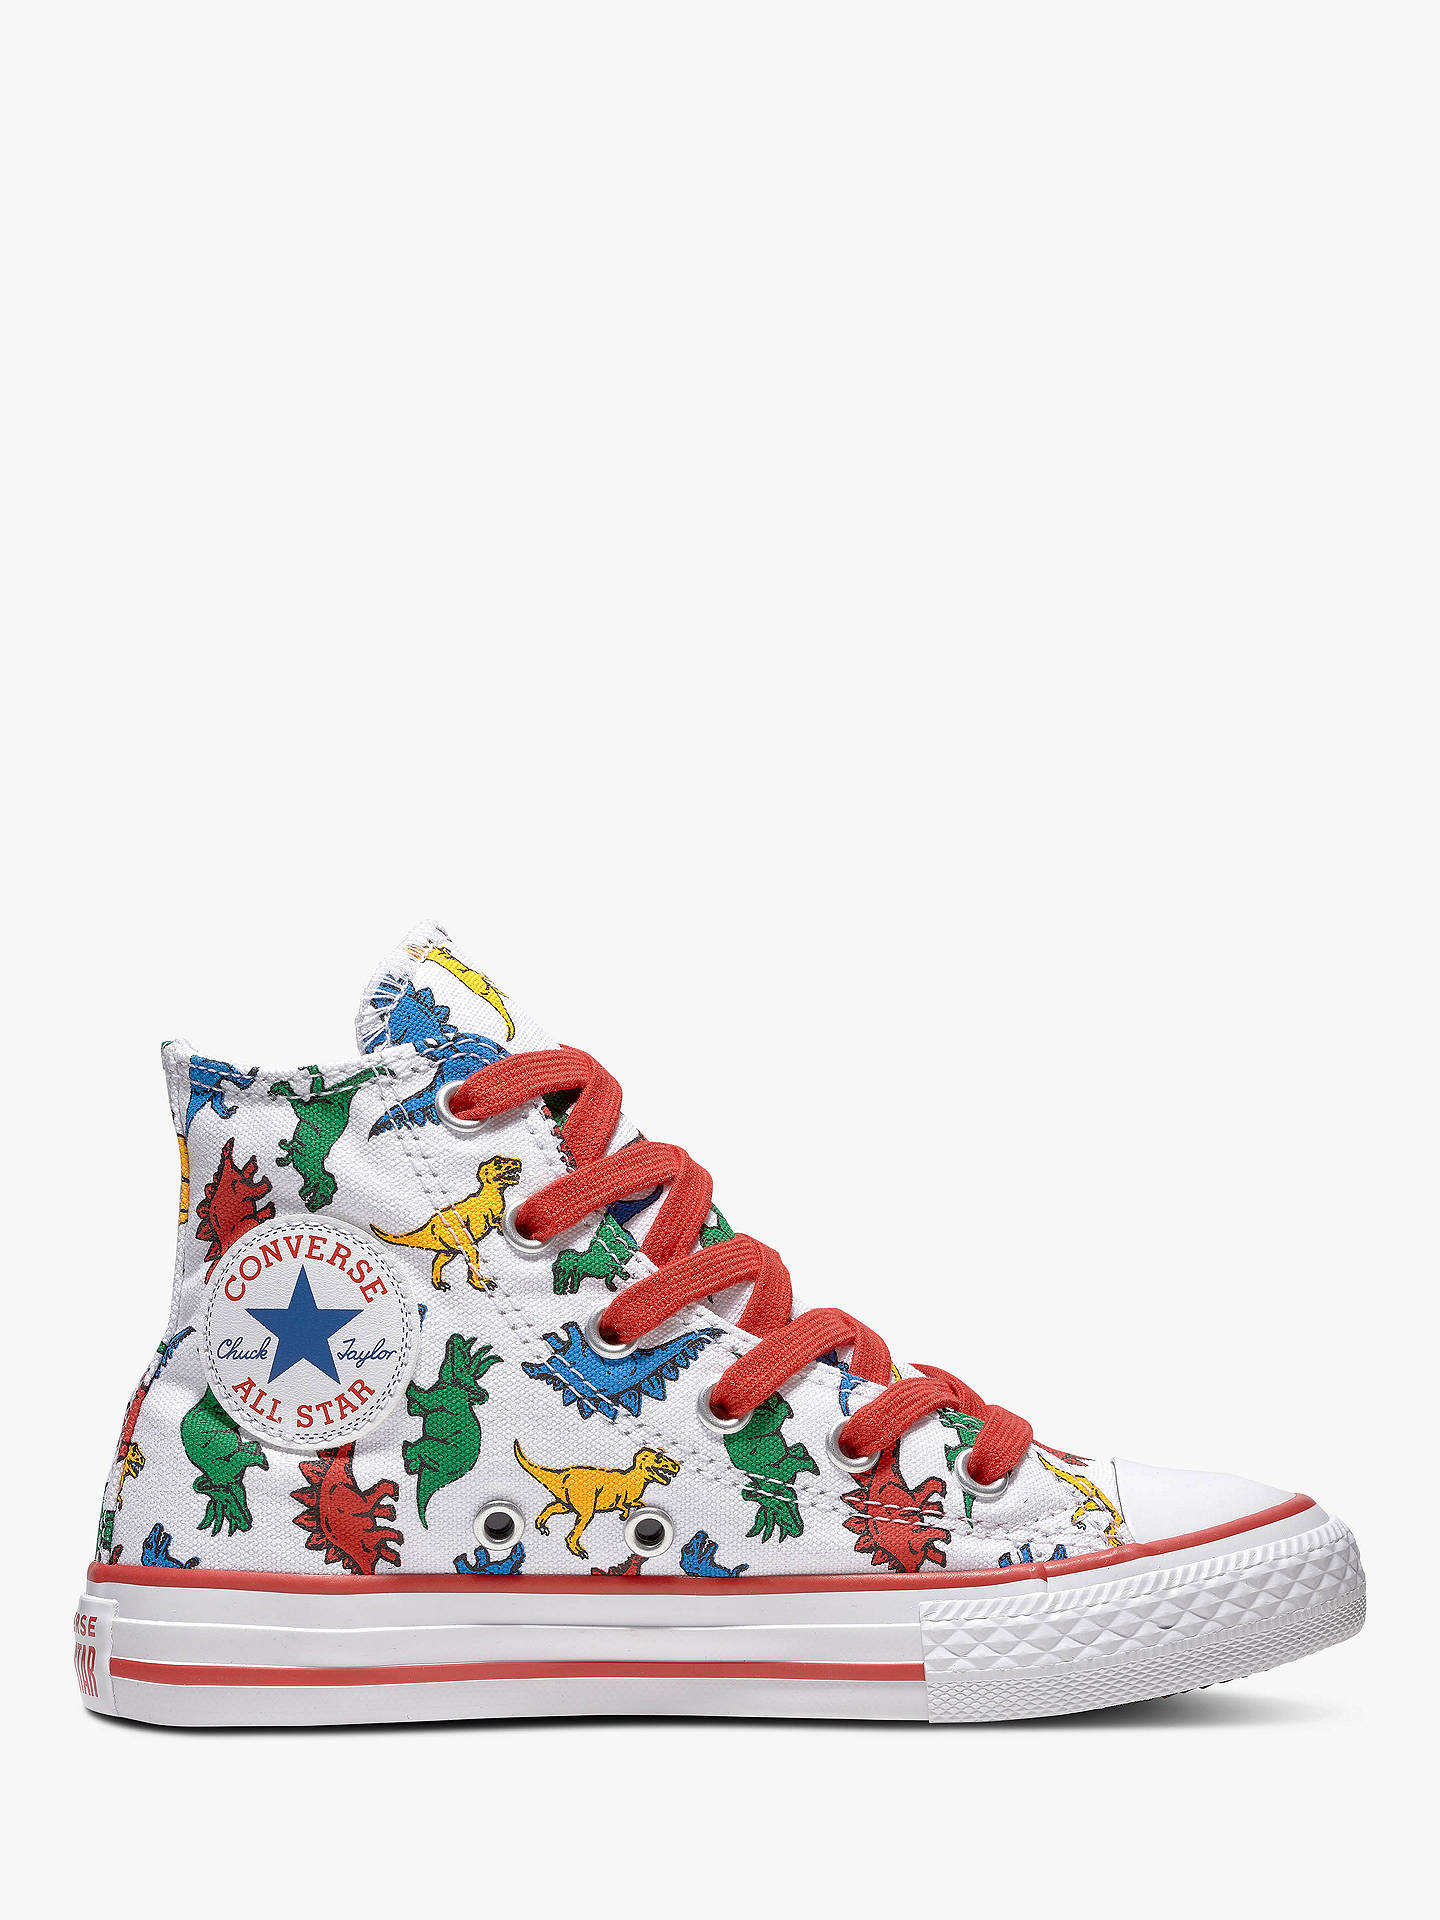 545cac2f84c5 Buy Converse Children s All Star Dinoverse Hi-Top Trainers